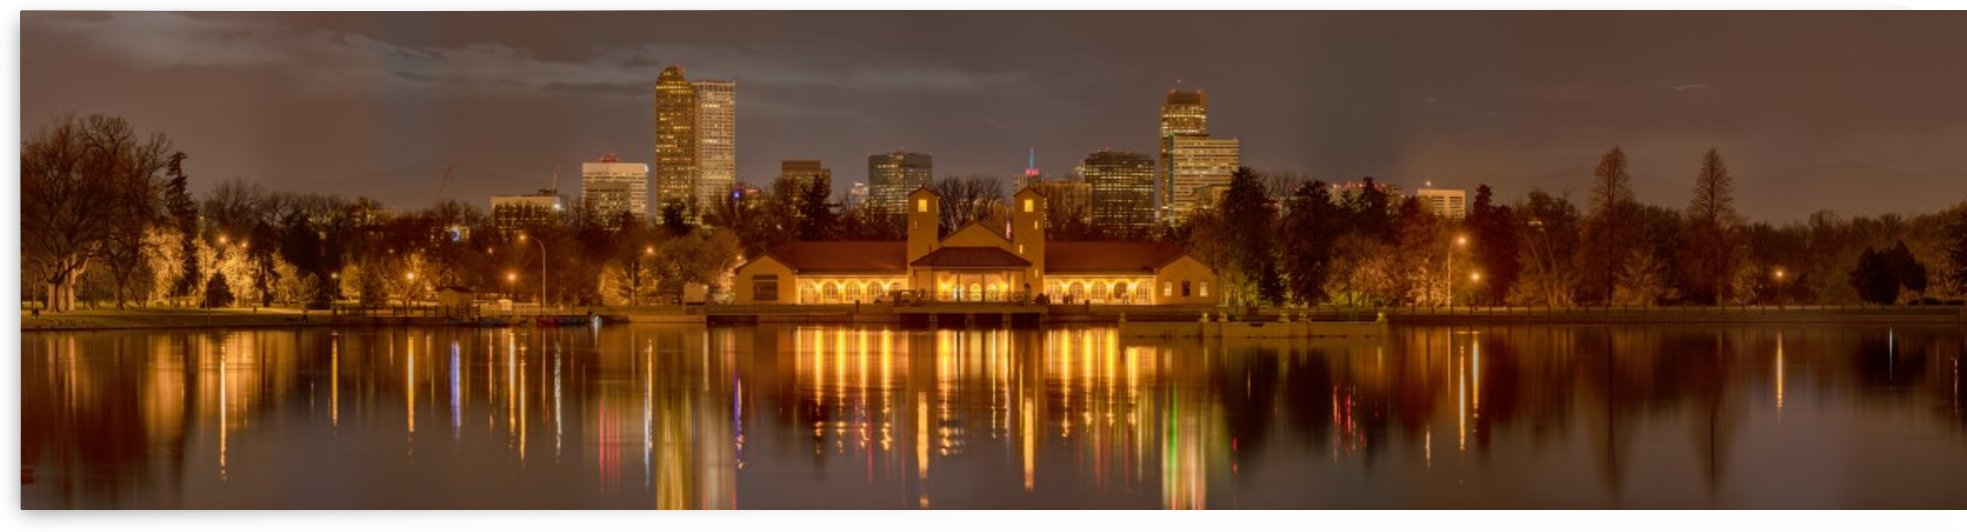 Spring Evening in City Park -- 8 x 32 ft. Wall Mural by John Freeman